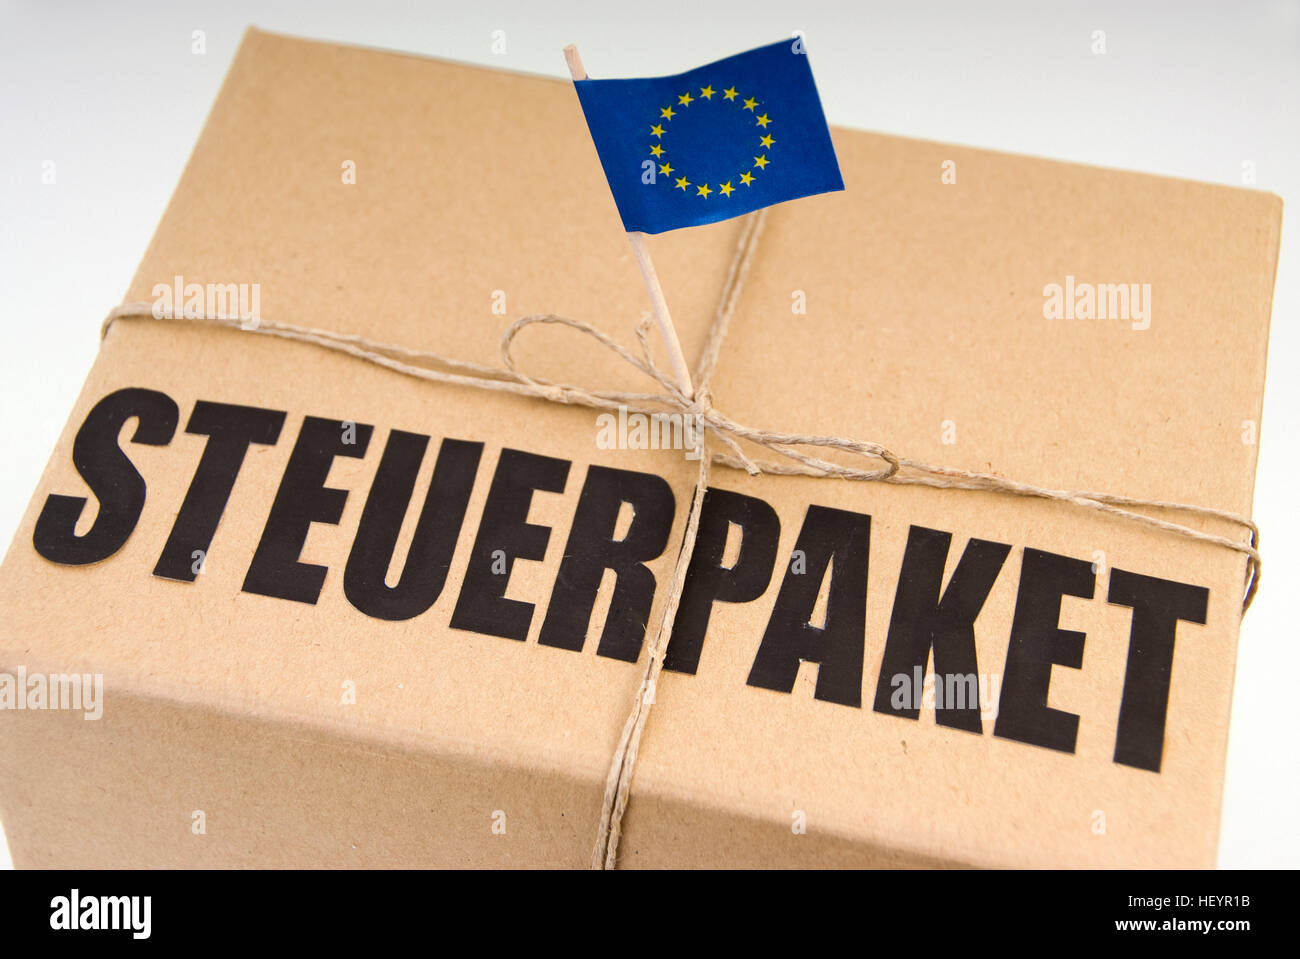 'Steuerpaket' - symbol for tax reforms in the European Union - Stock Image